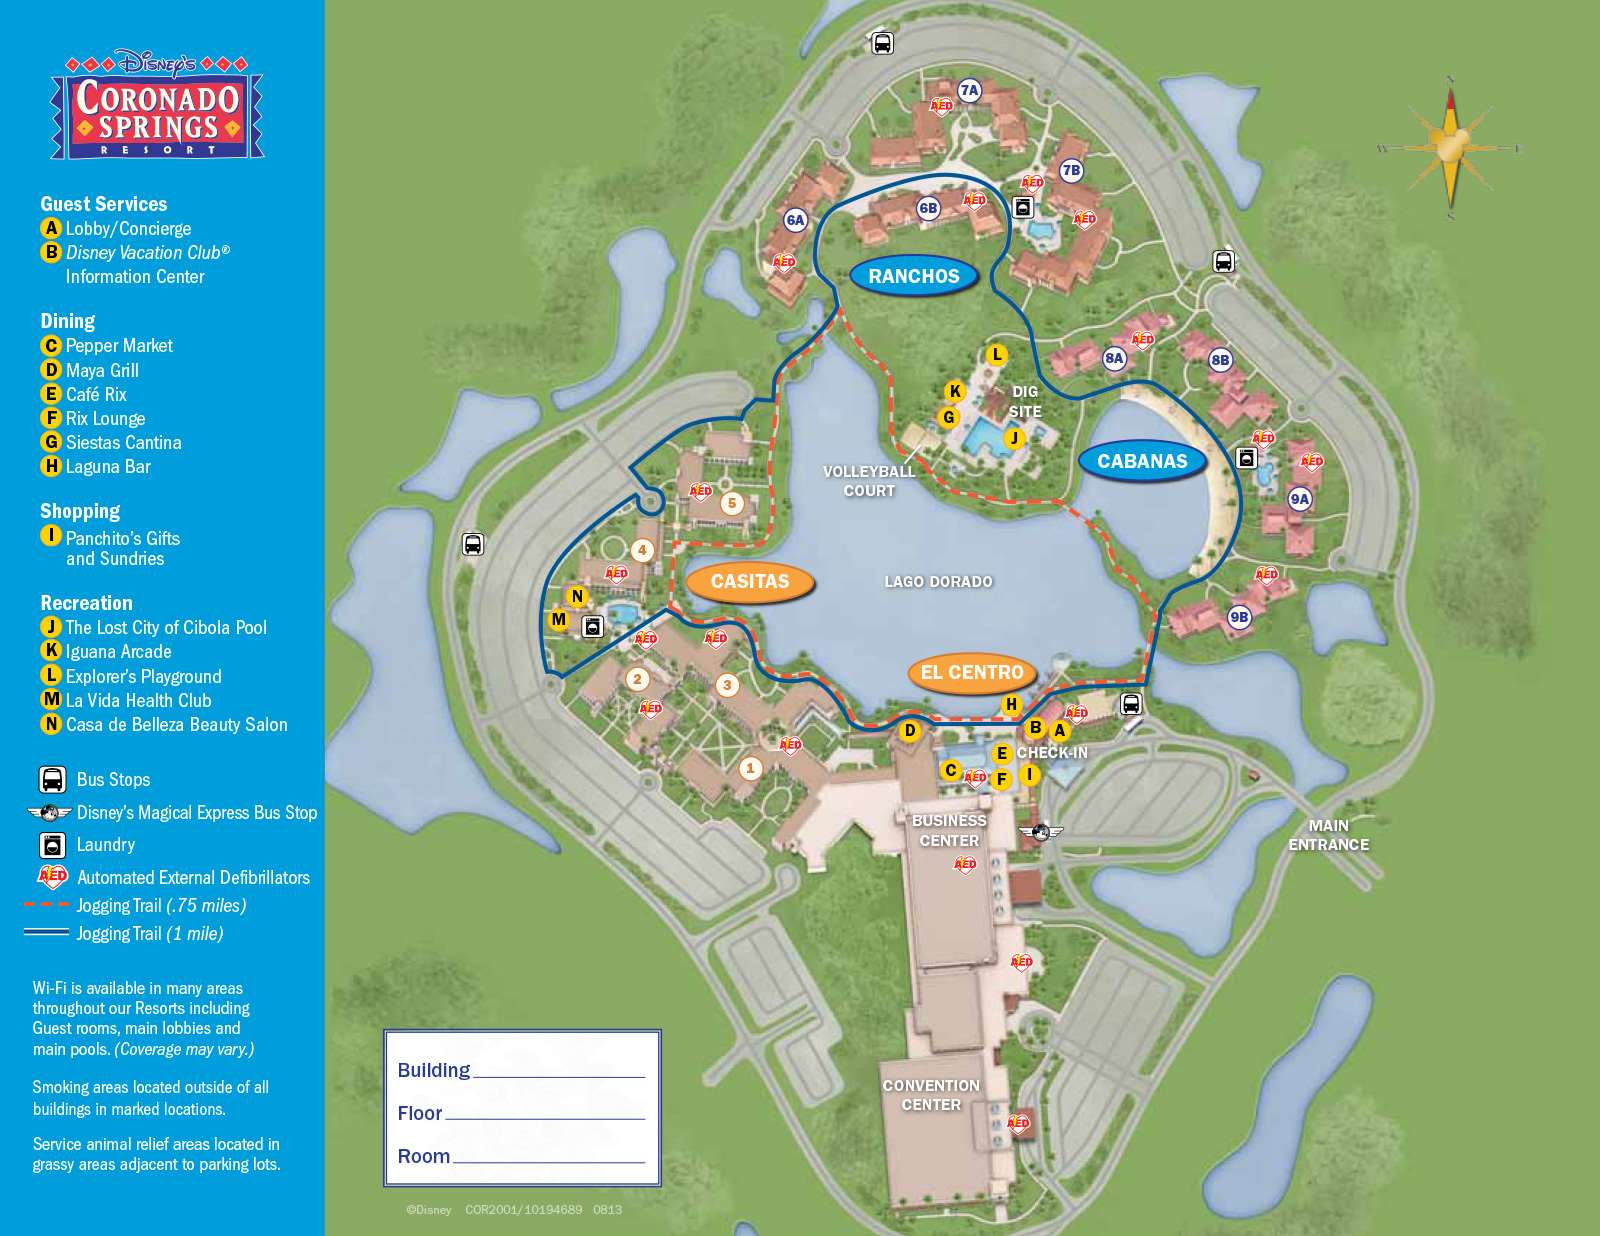 PHOTOS - New design of maps now at Walt Disney World resort hotels on